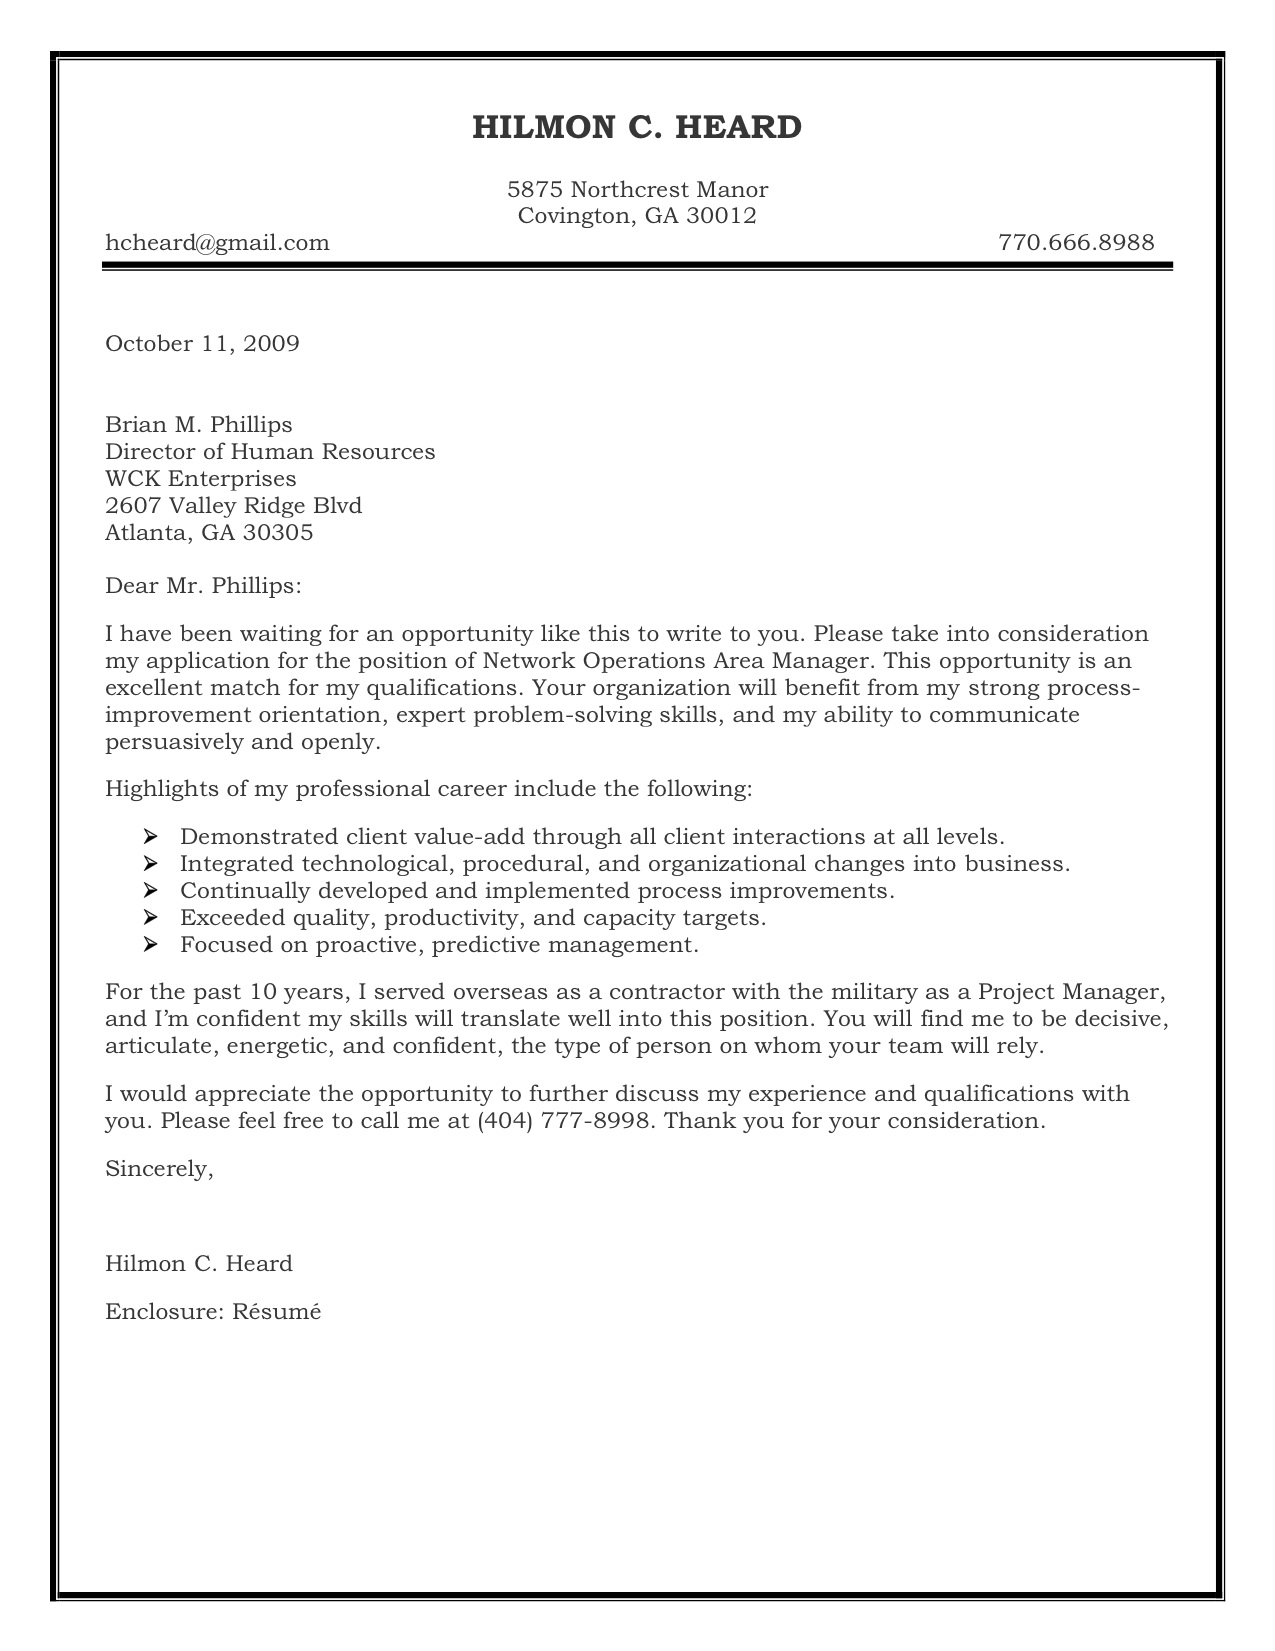 apa cover letter sample professional cover letter writing service ...